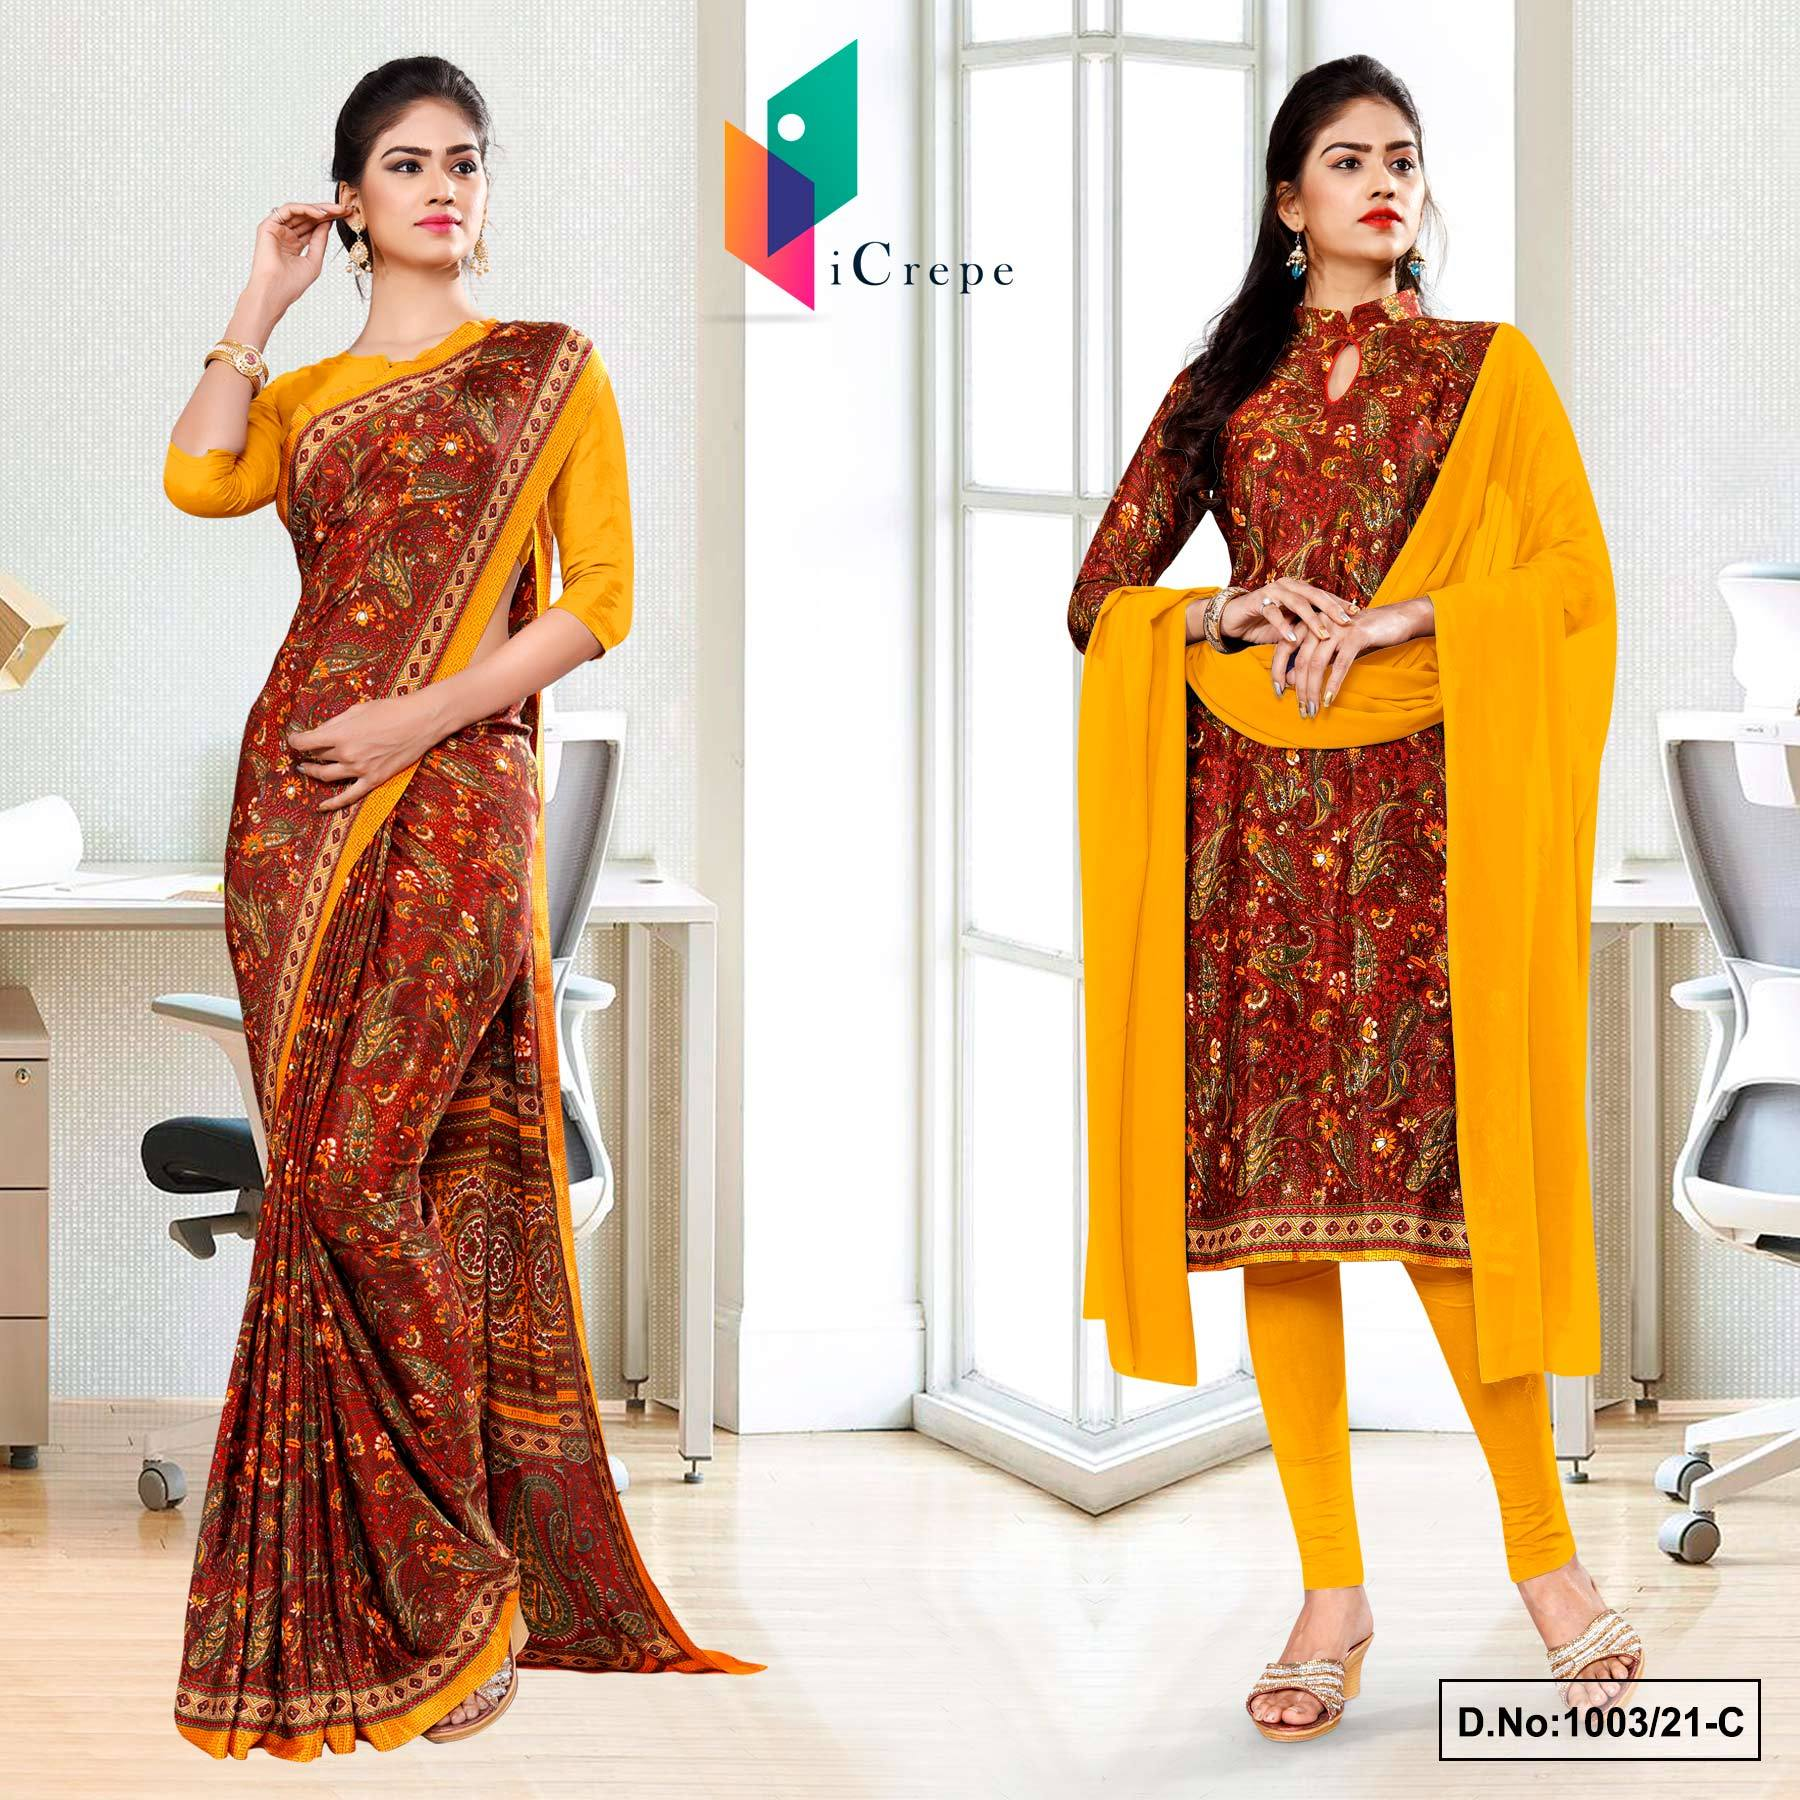 Maroon Gold Premium Paisley Print Italian Crepe Saree Salwar Combo for Office Uniform Sarees